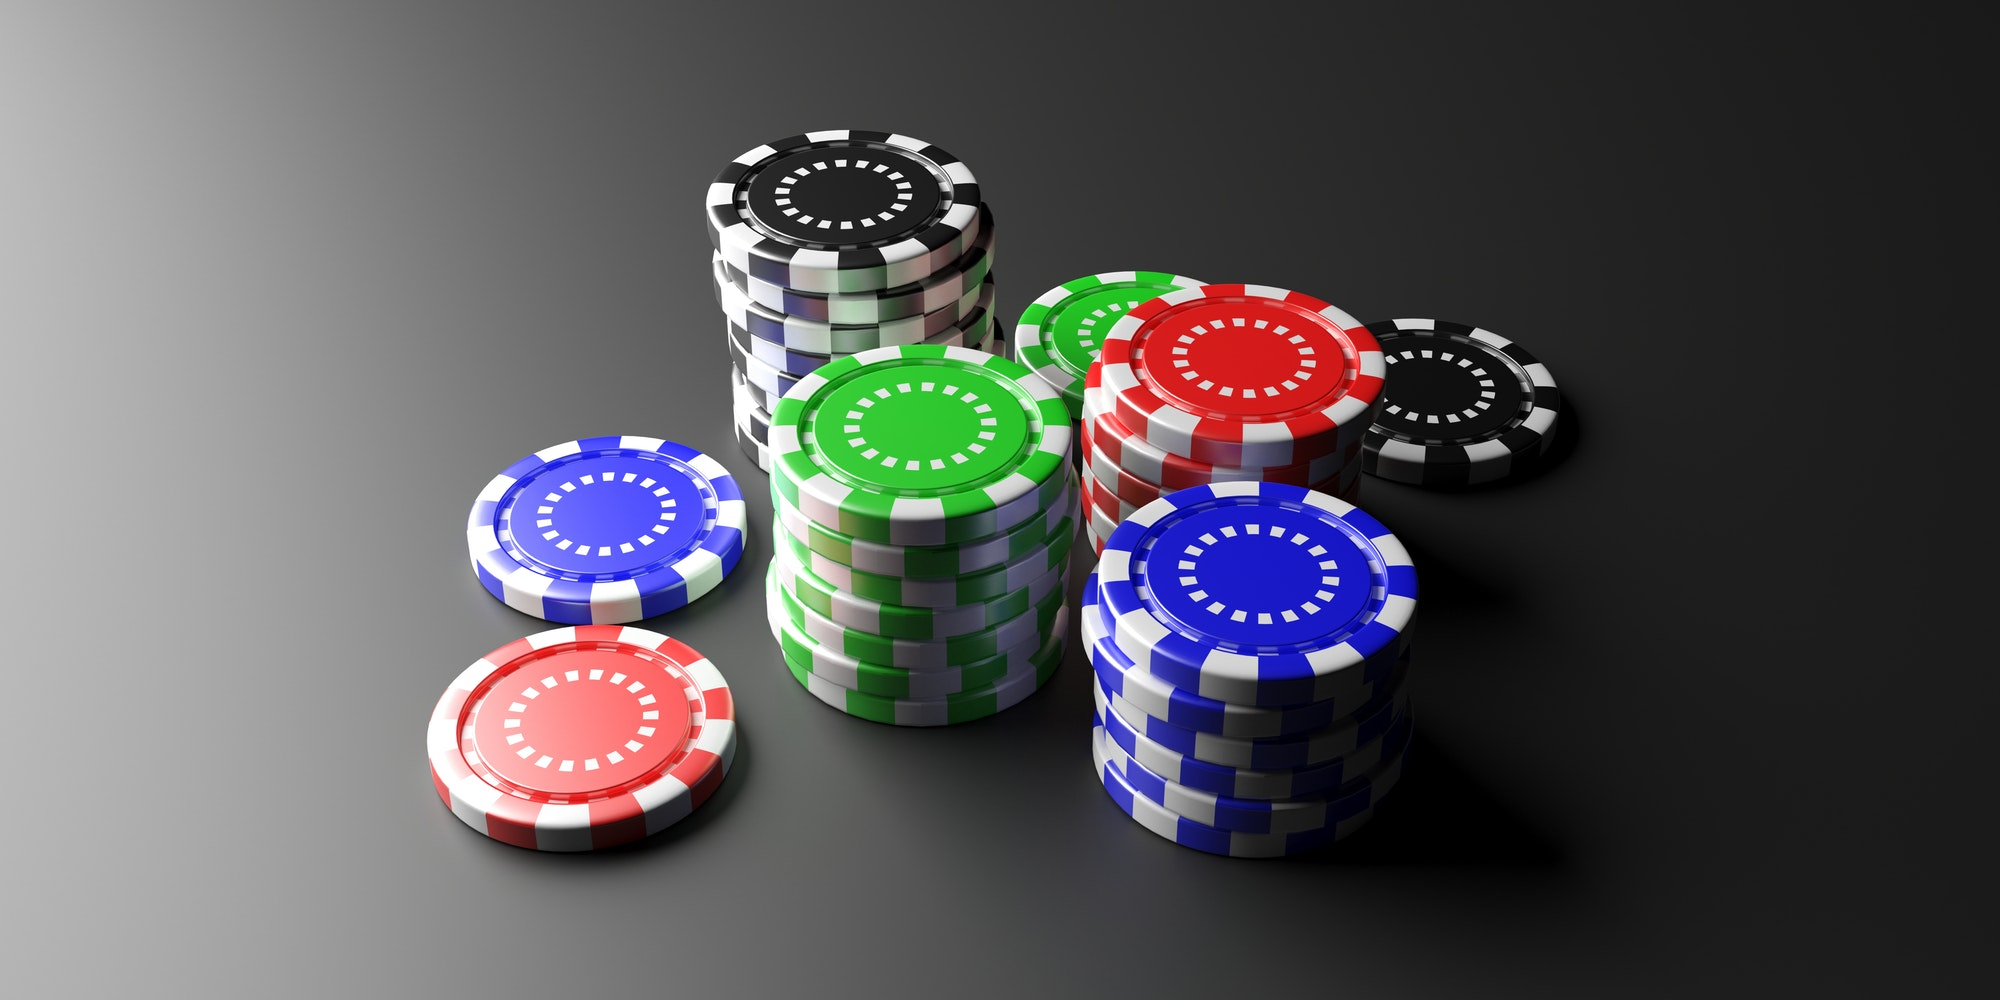 Casino poker chips on black background. 3d illustration